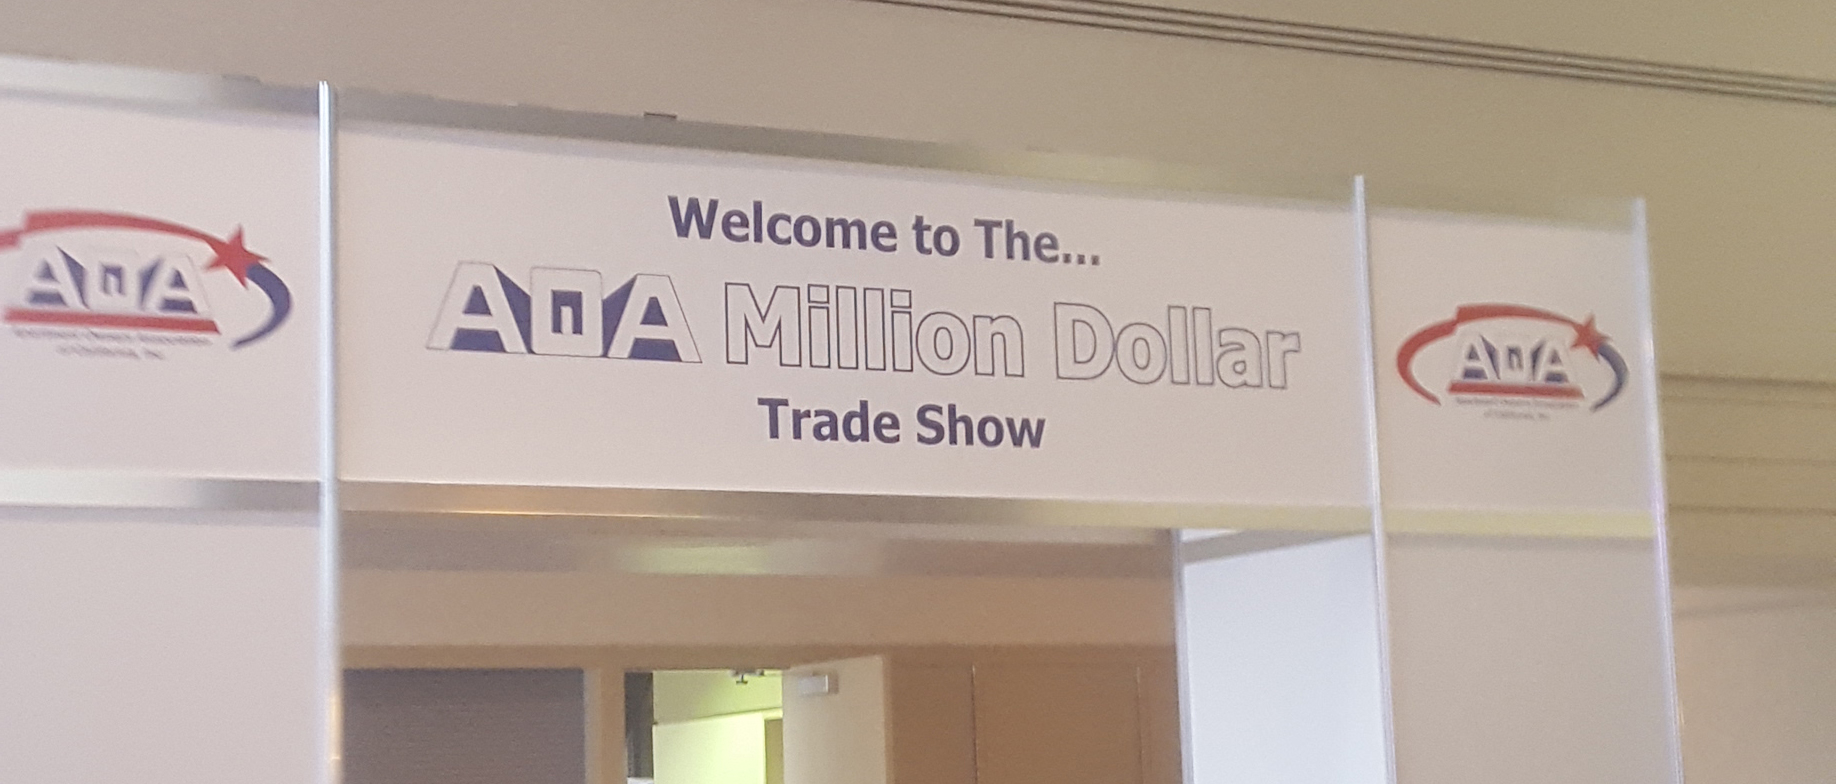 Apartment Owners Association Trade Show Entrance